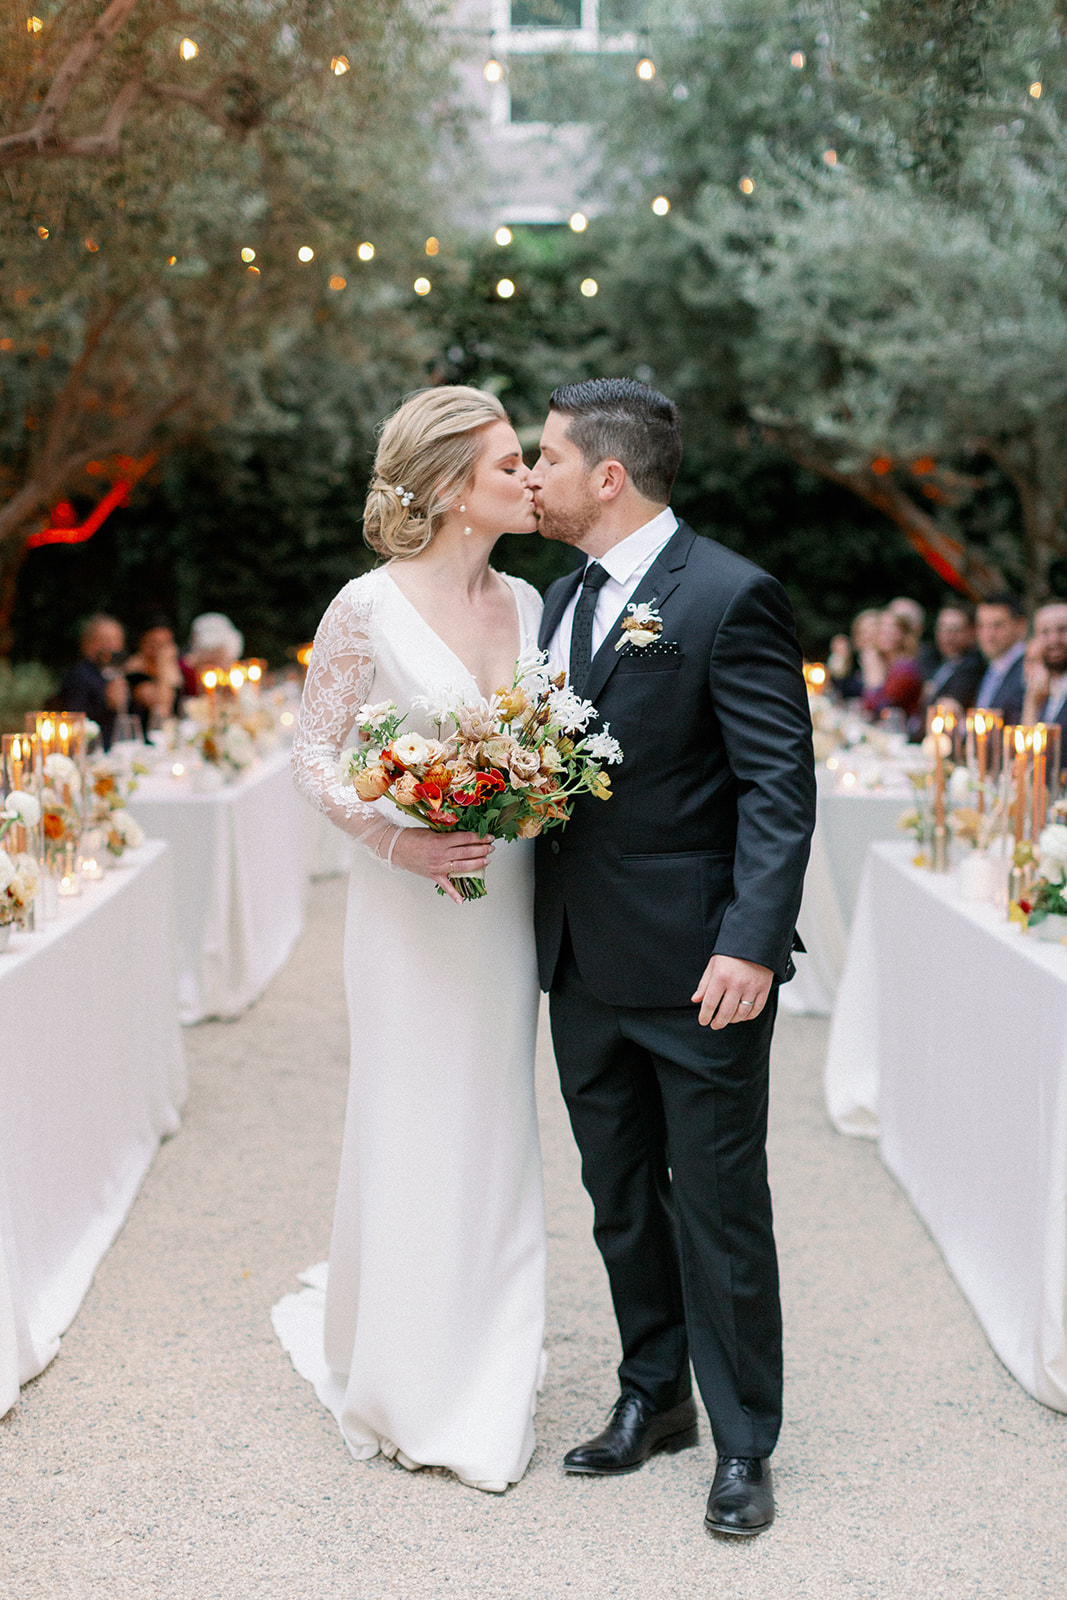 wedding couple kissing between rows of tables for outdoor ceremony